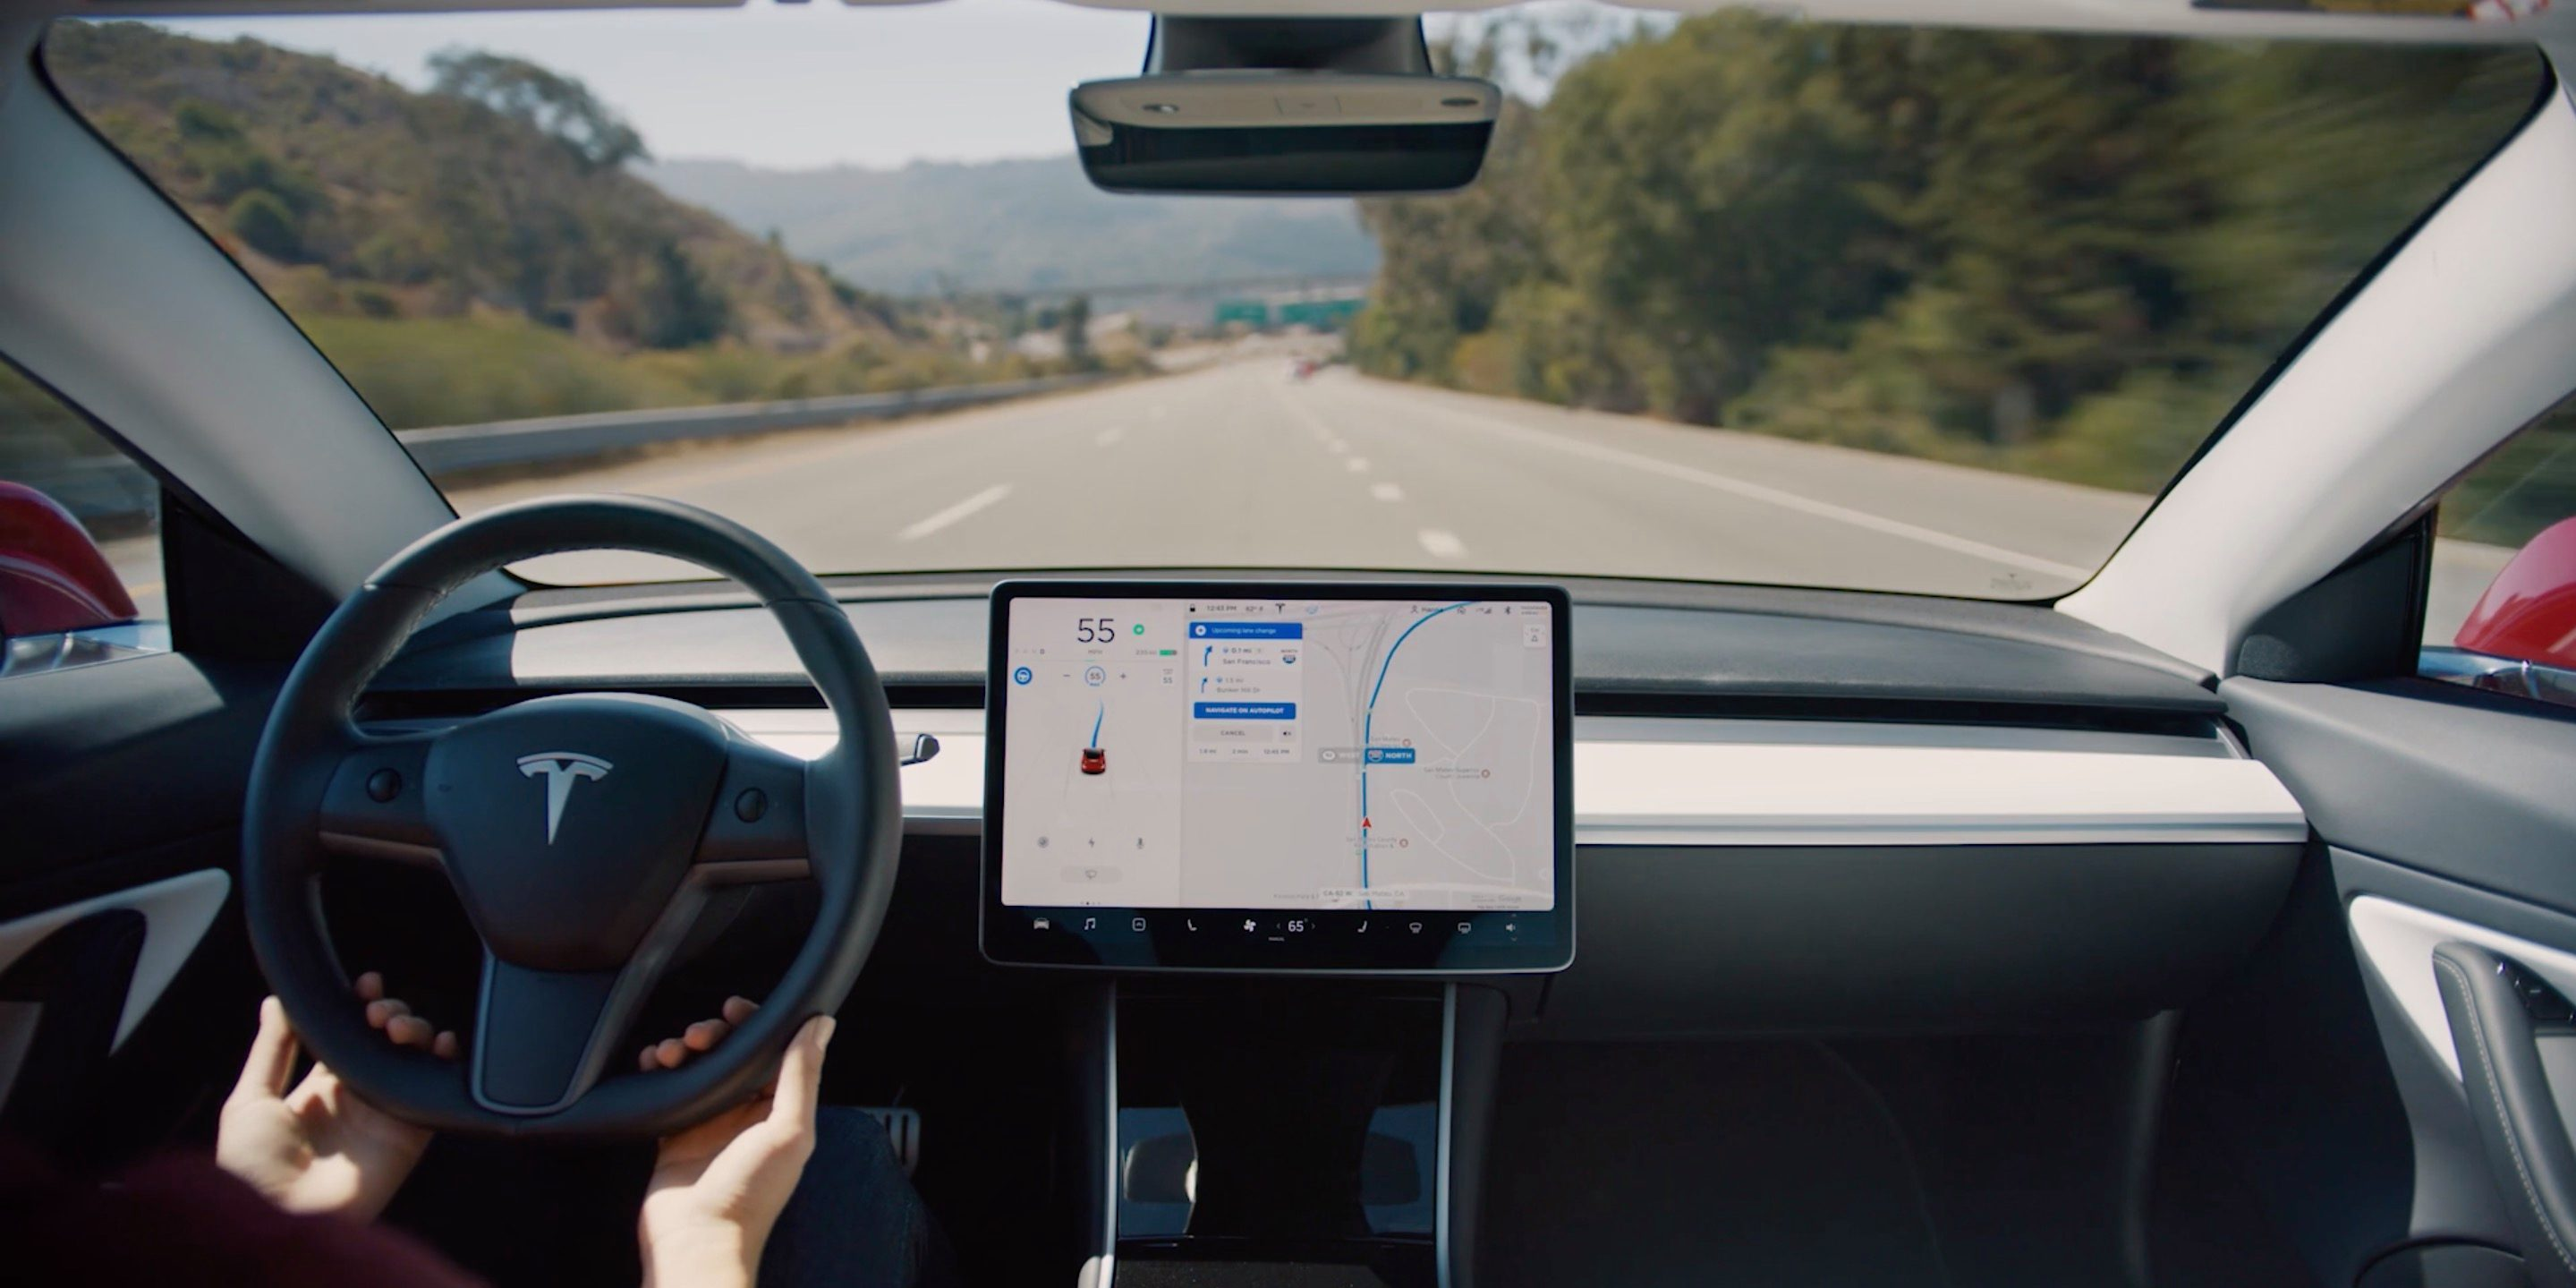 Tesla Autopilot is 'soon' going to support traffic lights, roundabouts, and full self-driving, says Elon Musk